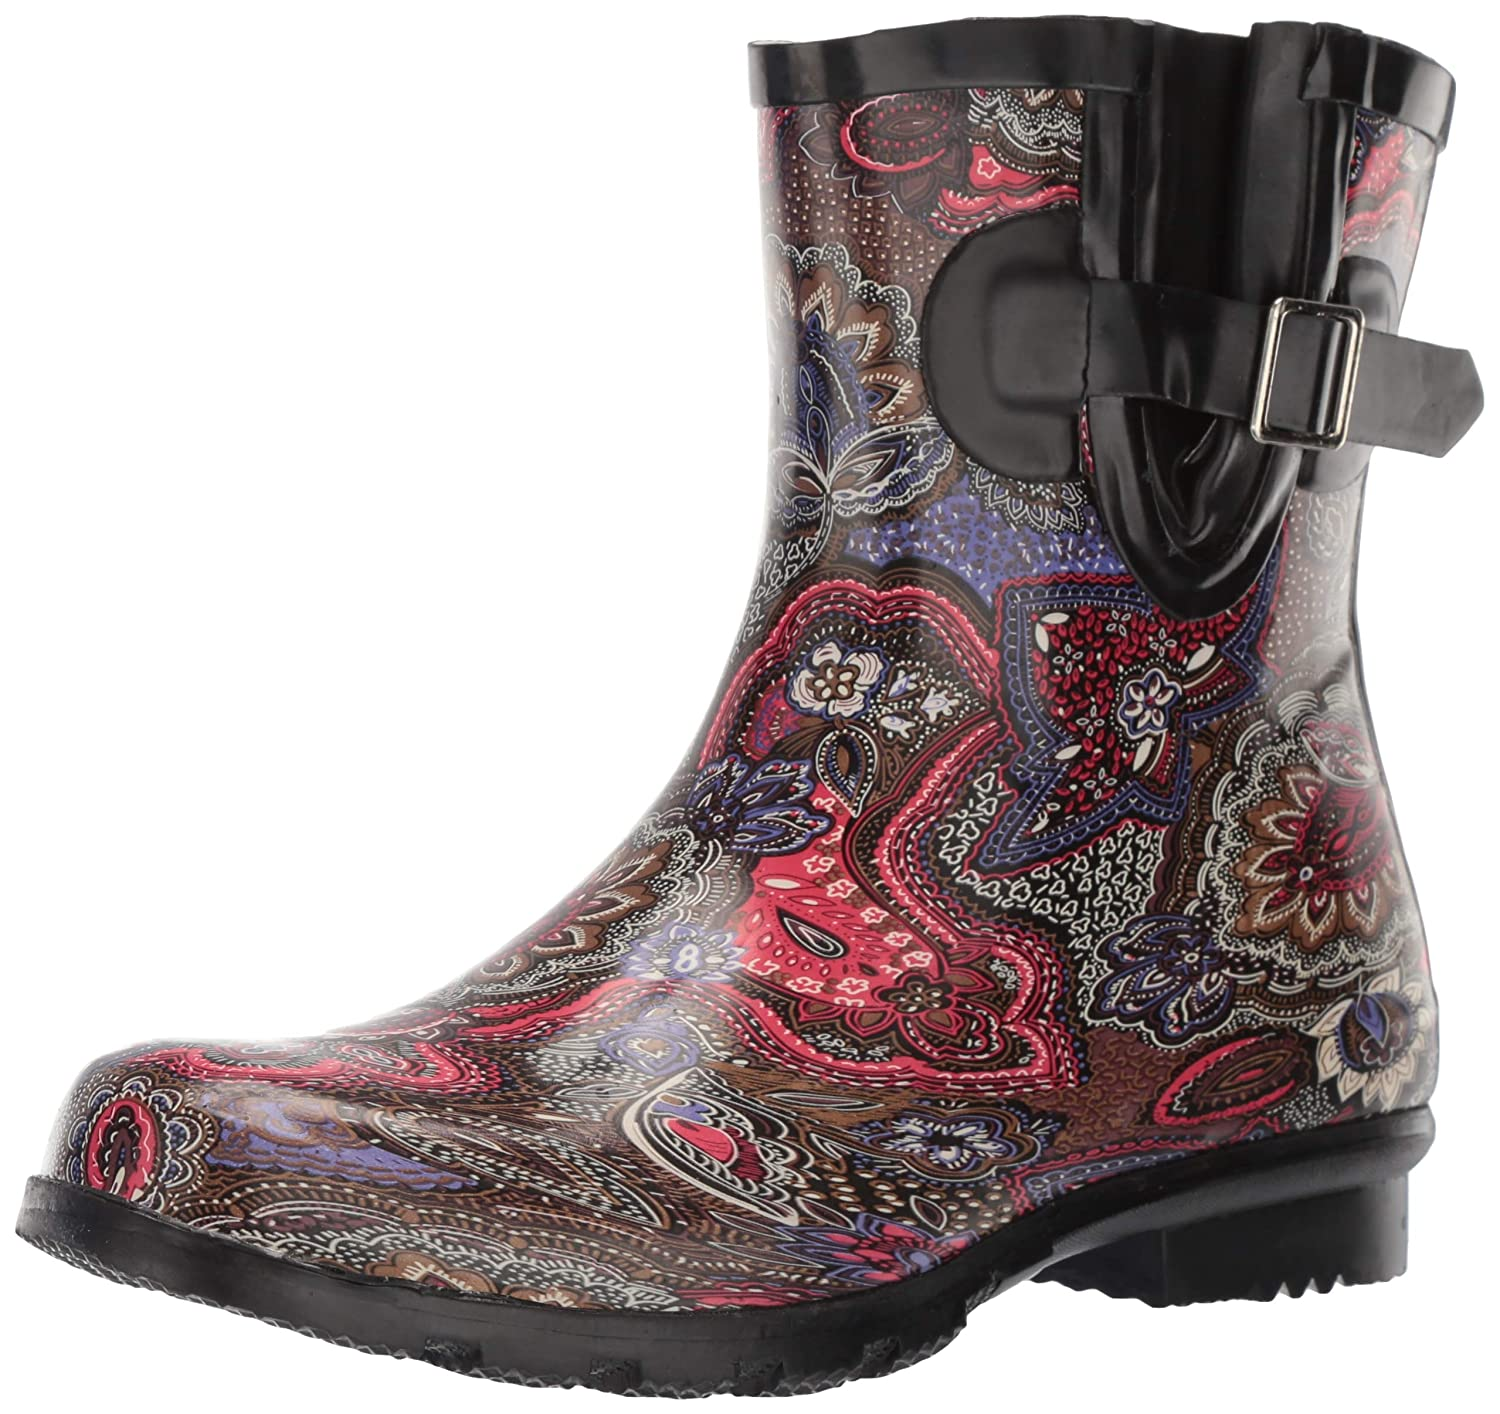 Berry Paisley Nomad Women's Droplet Rain Boot